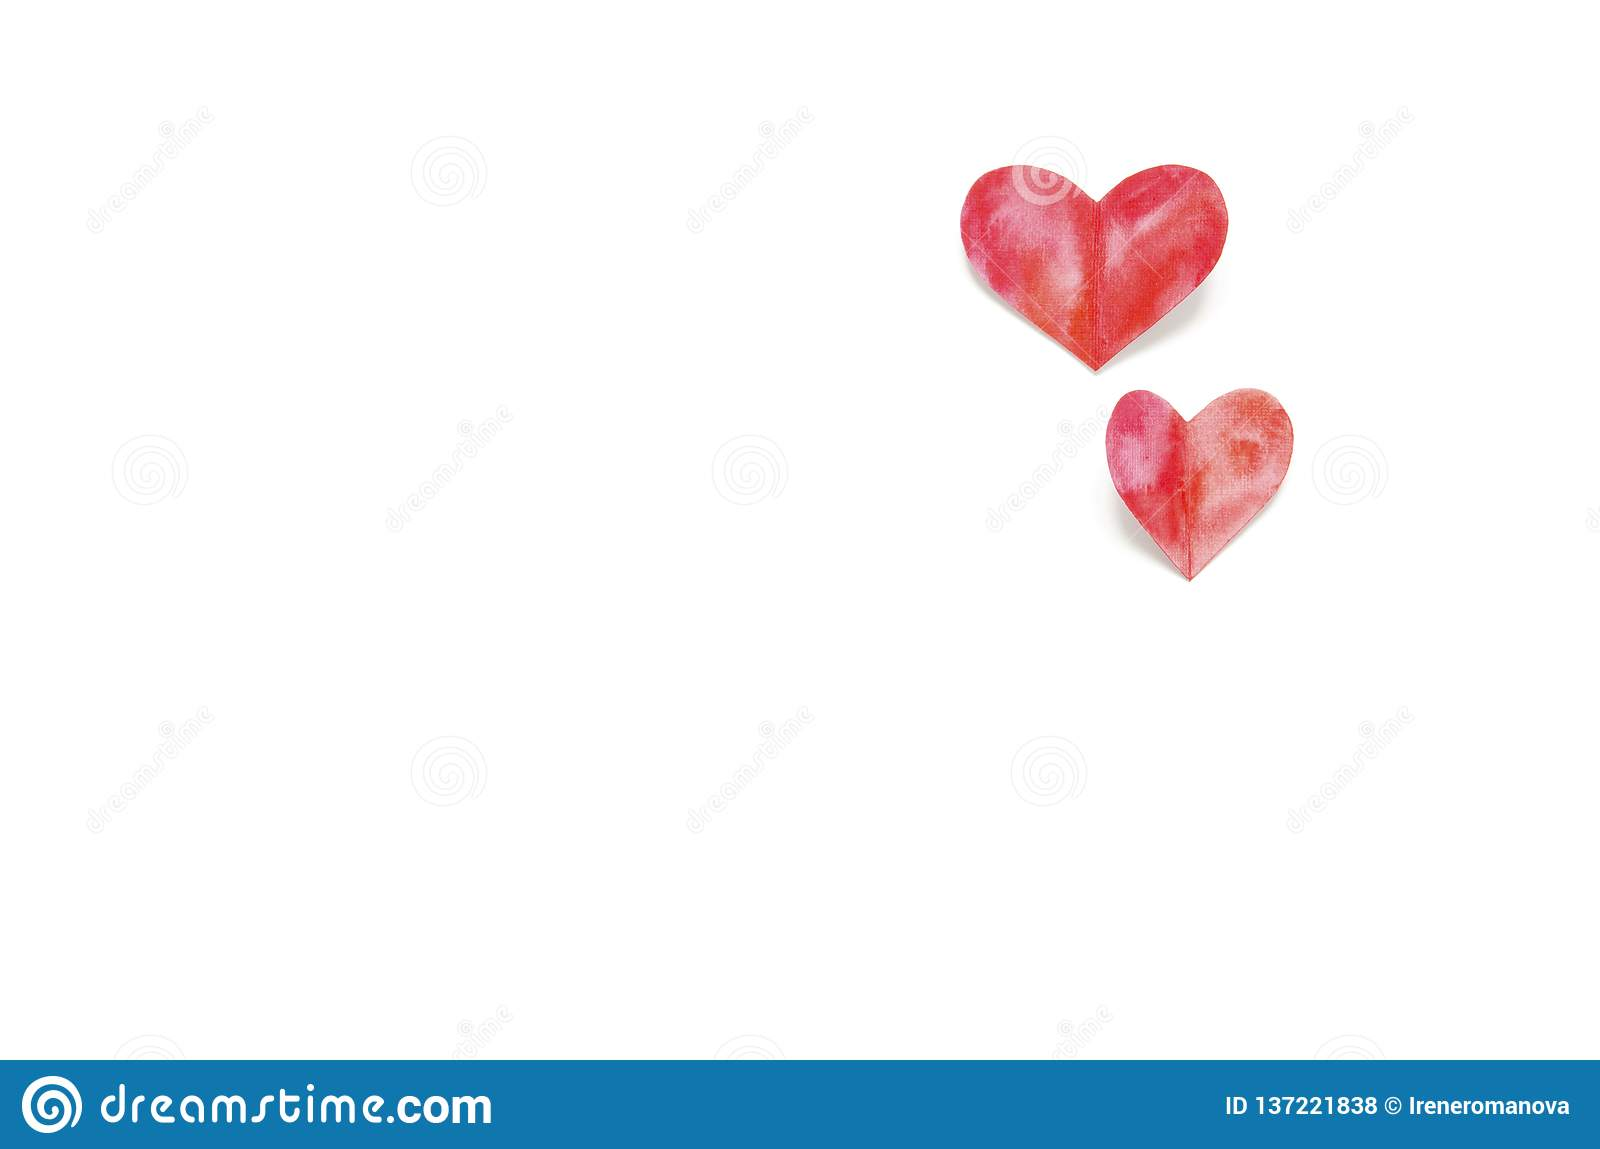 Watercolor hearts. Love concept for mother`s day and valentine`s day. Top view.